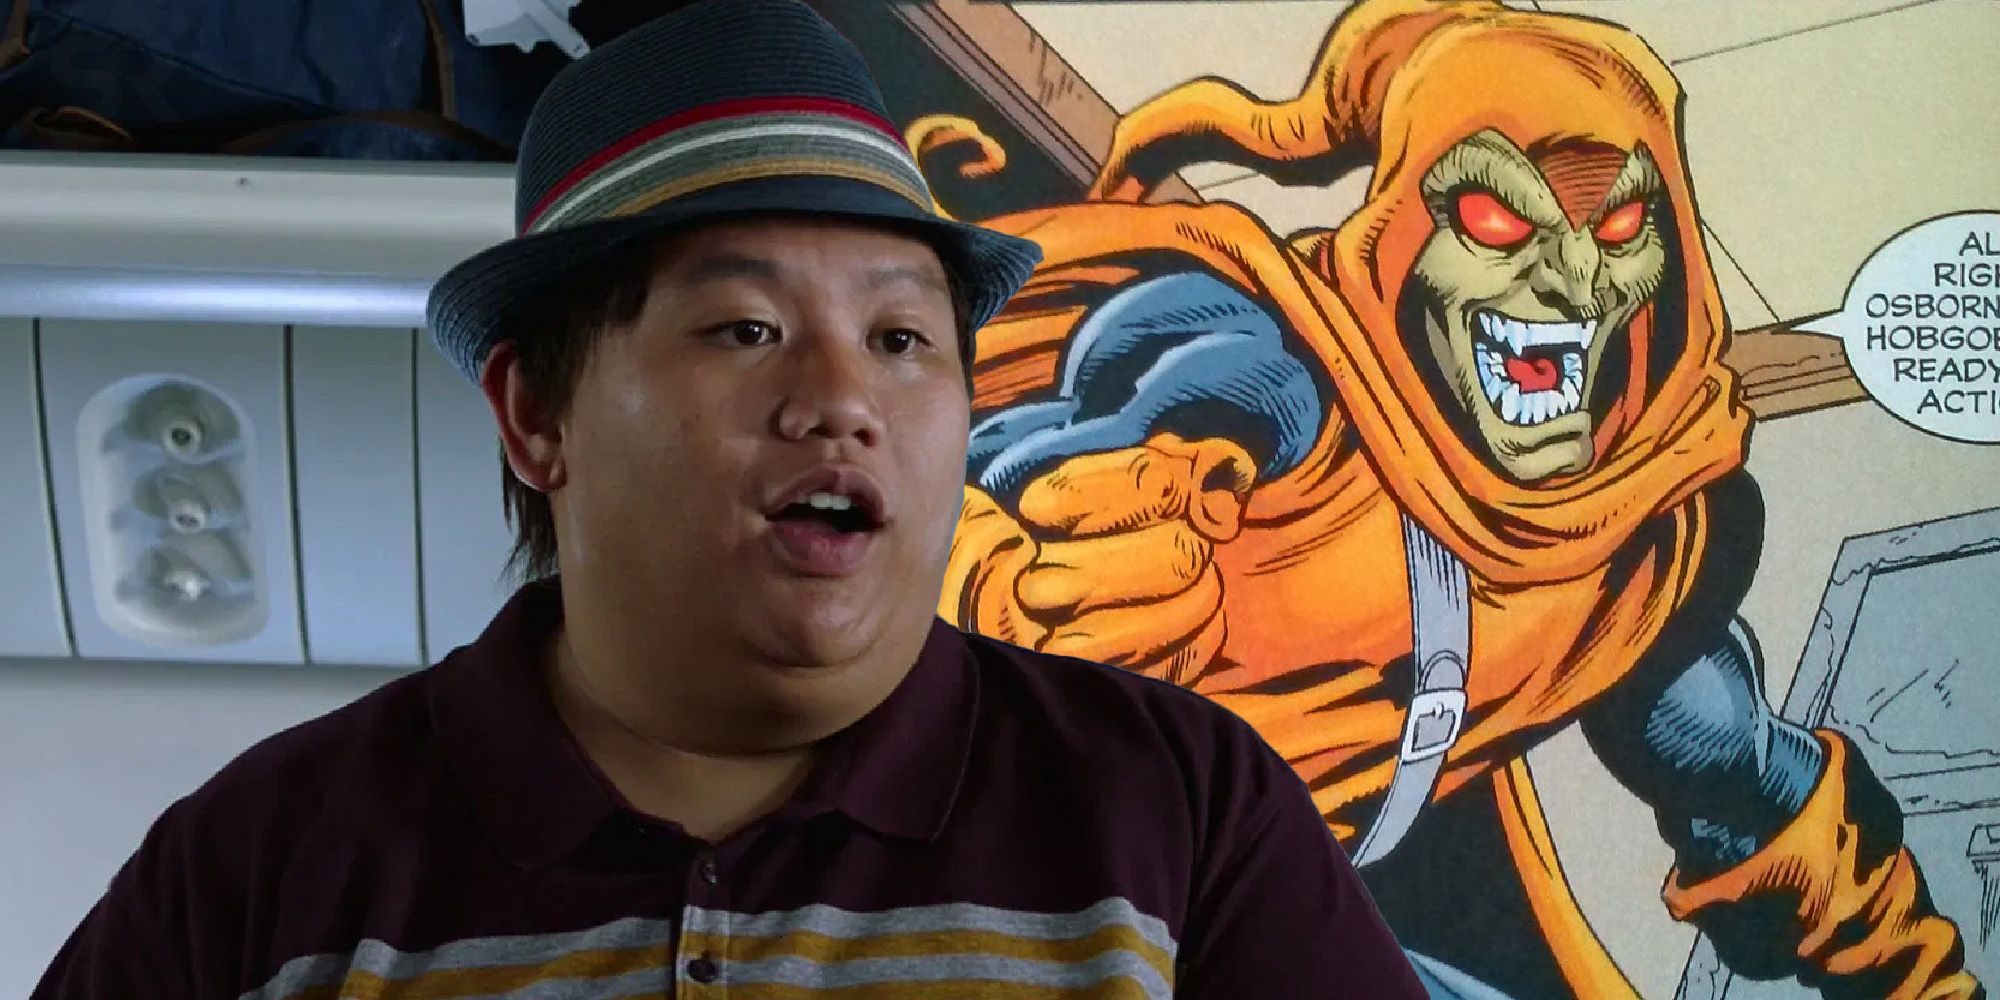 Spider-Man 3 Theory: Ned Leeds Becomes Hobgoblin (From The Multiverse)